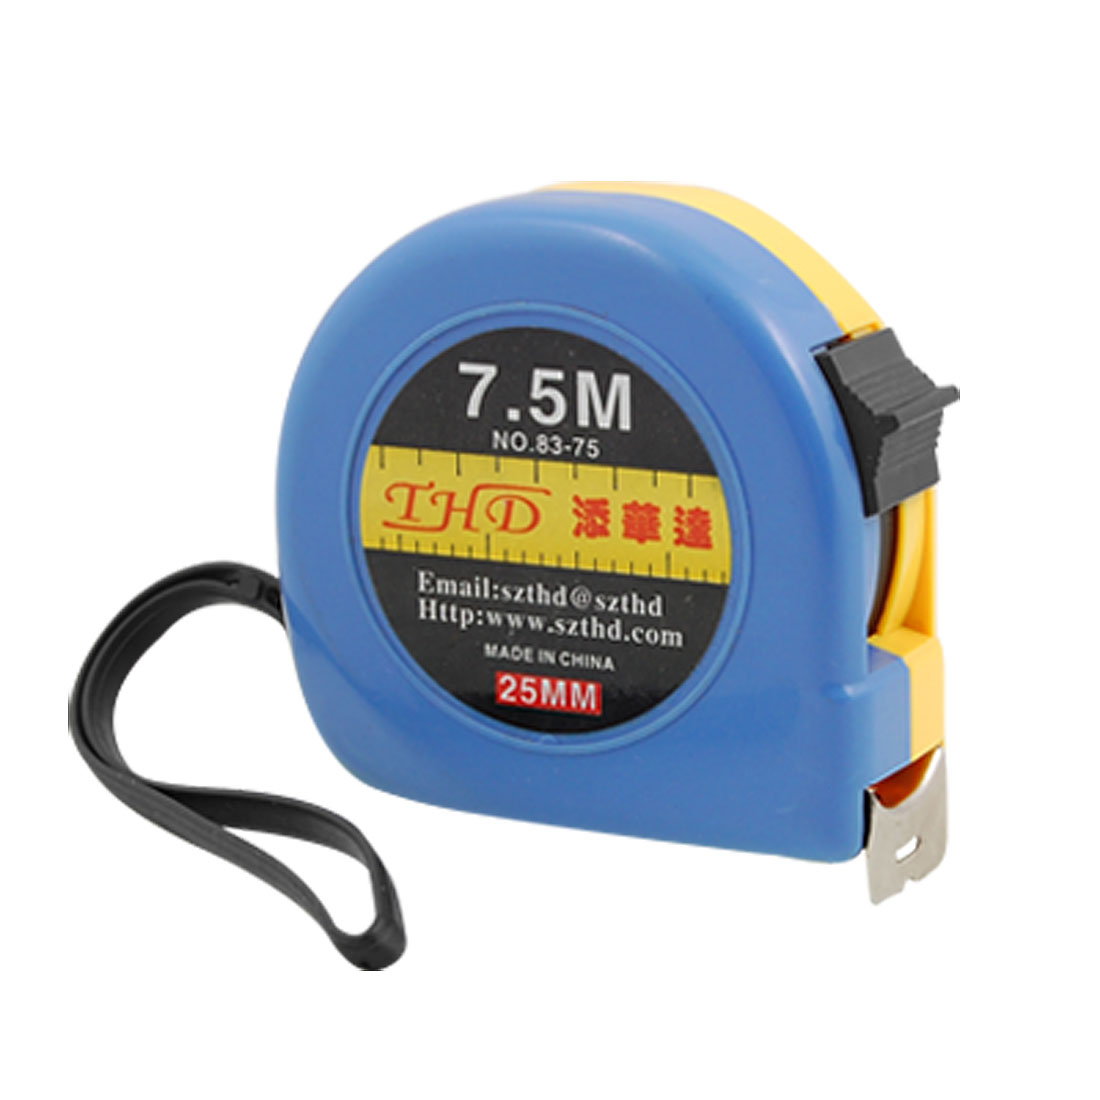 7.5M Yellow Blue Retractable Steel Tape Measure with Manual Lock